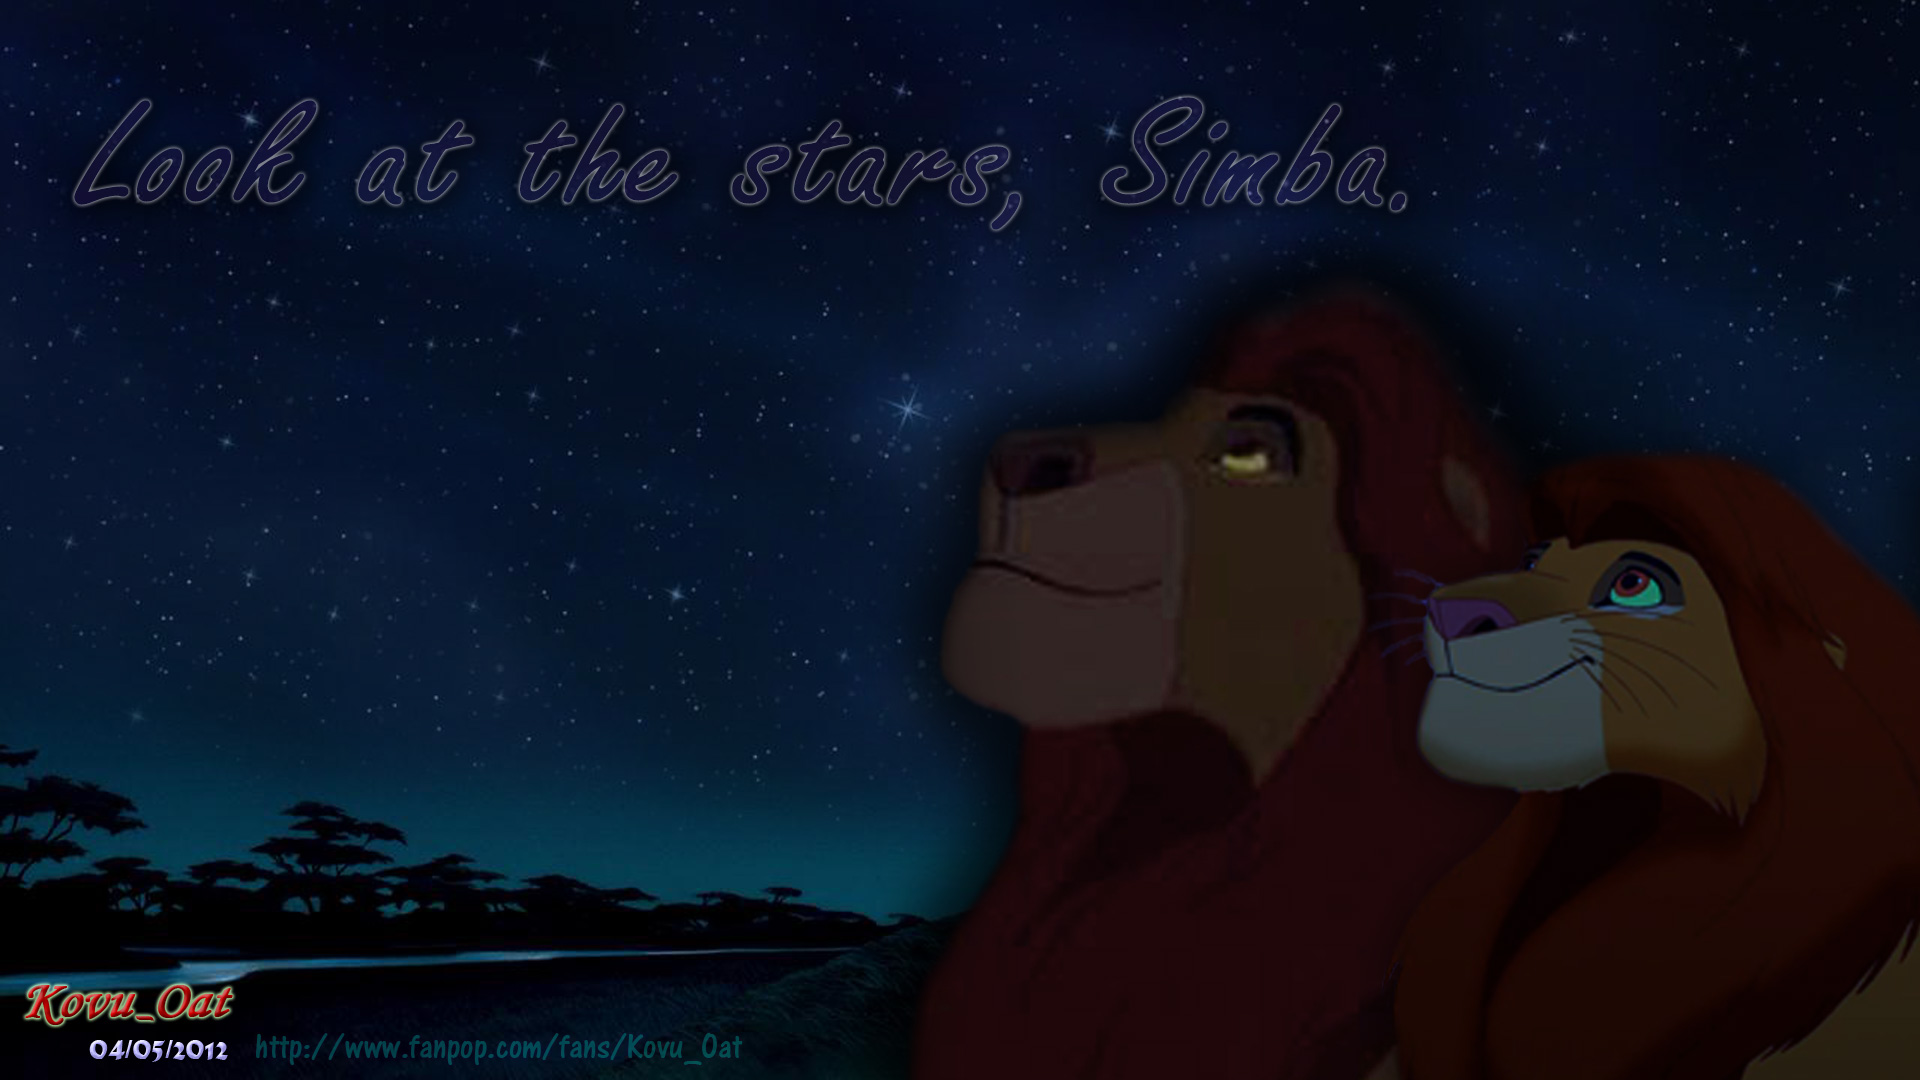 "lion king fathers and mothers images "" look at the stars simba "" the"